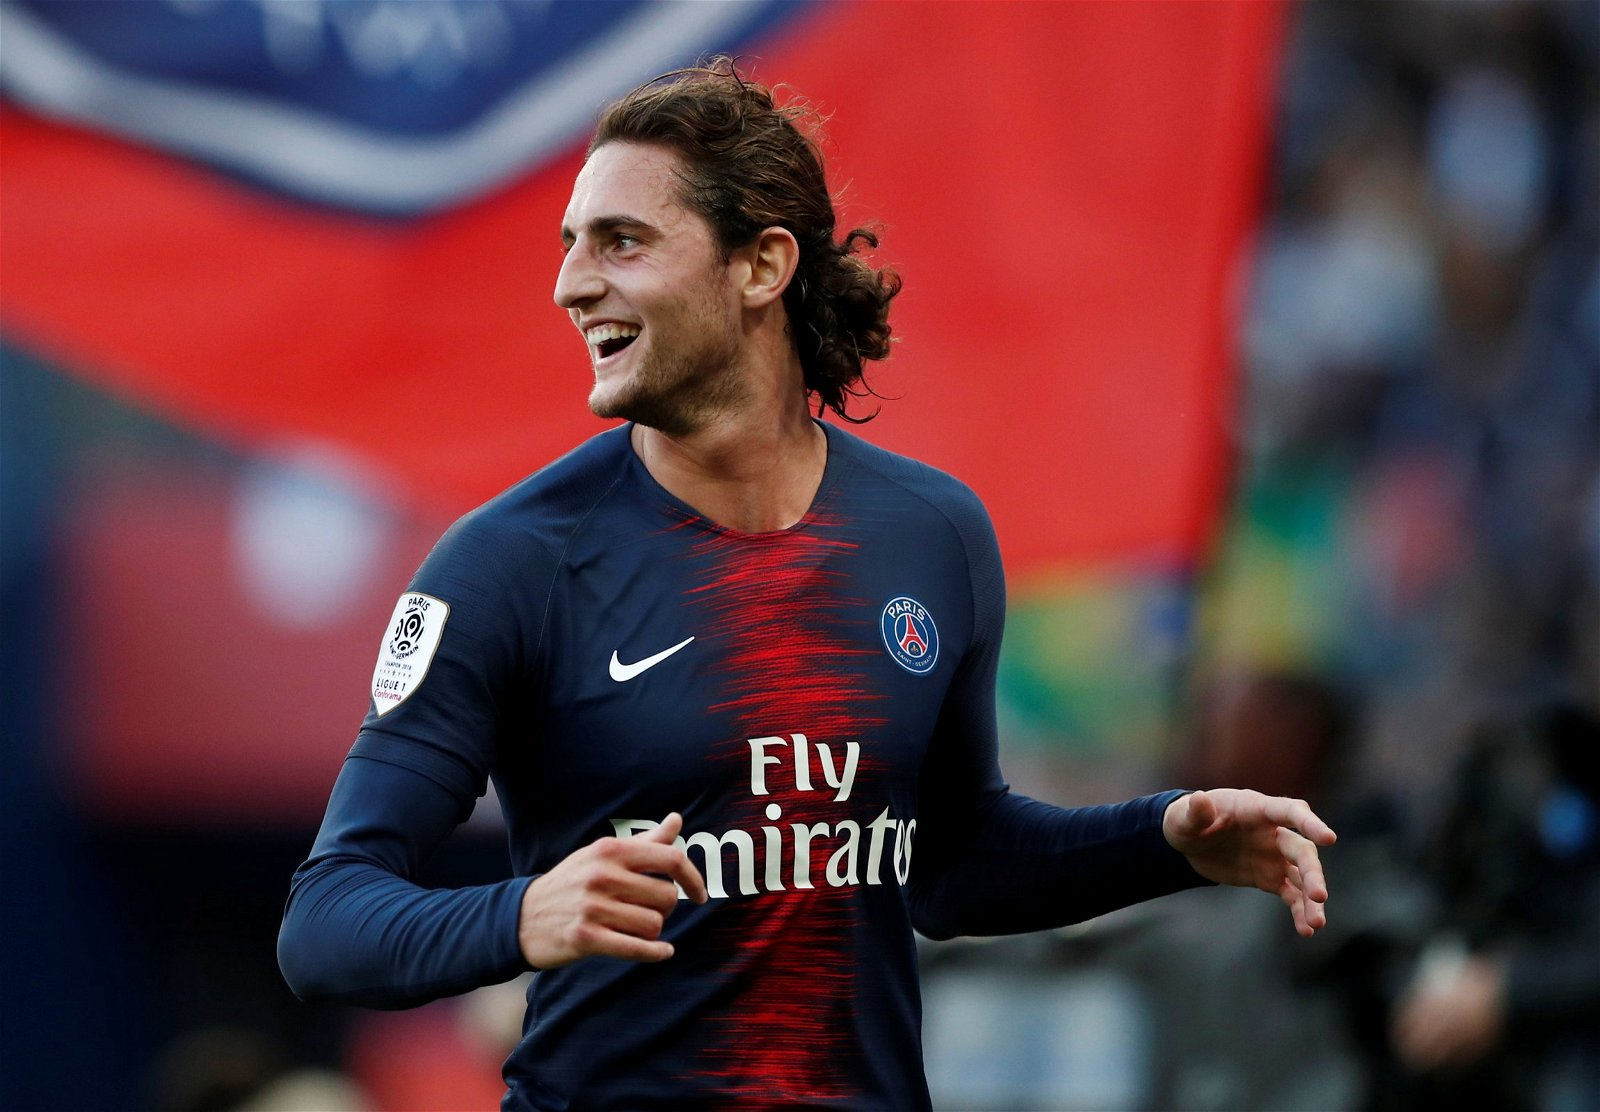 Paris St Germains Adrien Rabiot celebrates scoring their 2nd goal v Amiens SC - £25.2m-rated ace, Ramsey replacement: Perfect signings for Arsenal's reported transfer plans